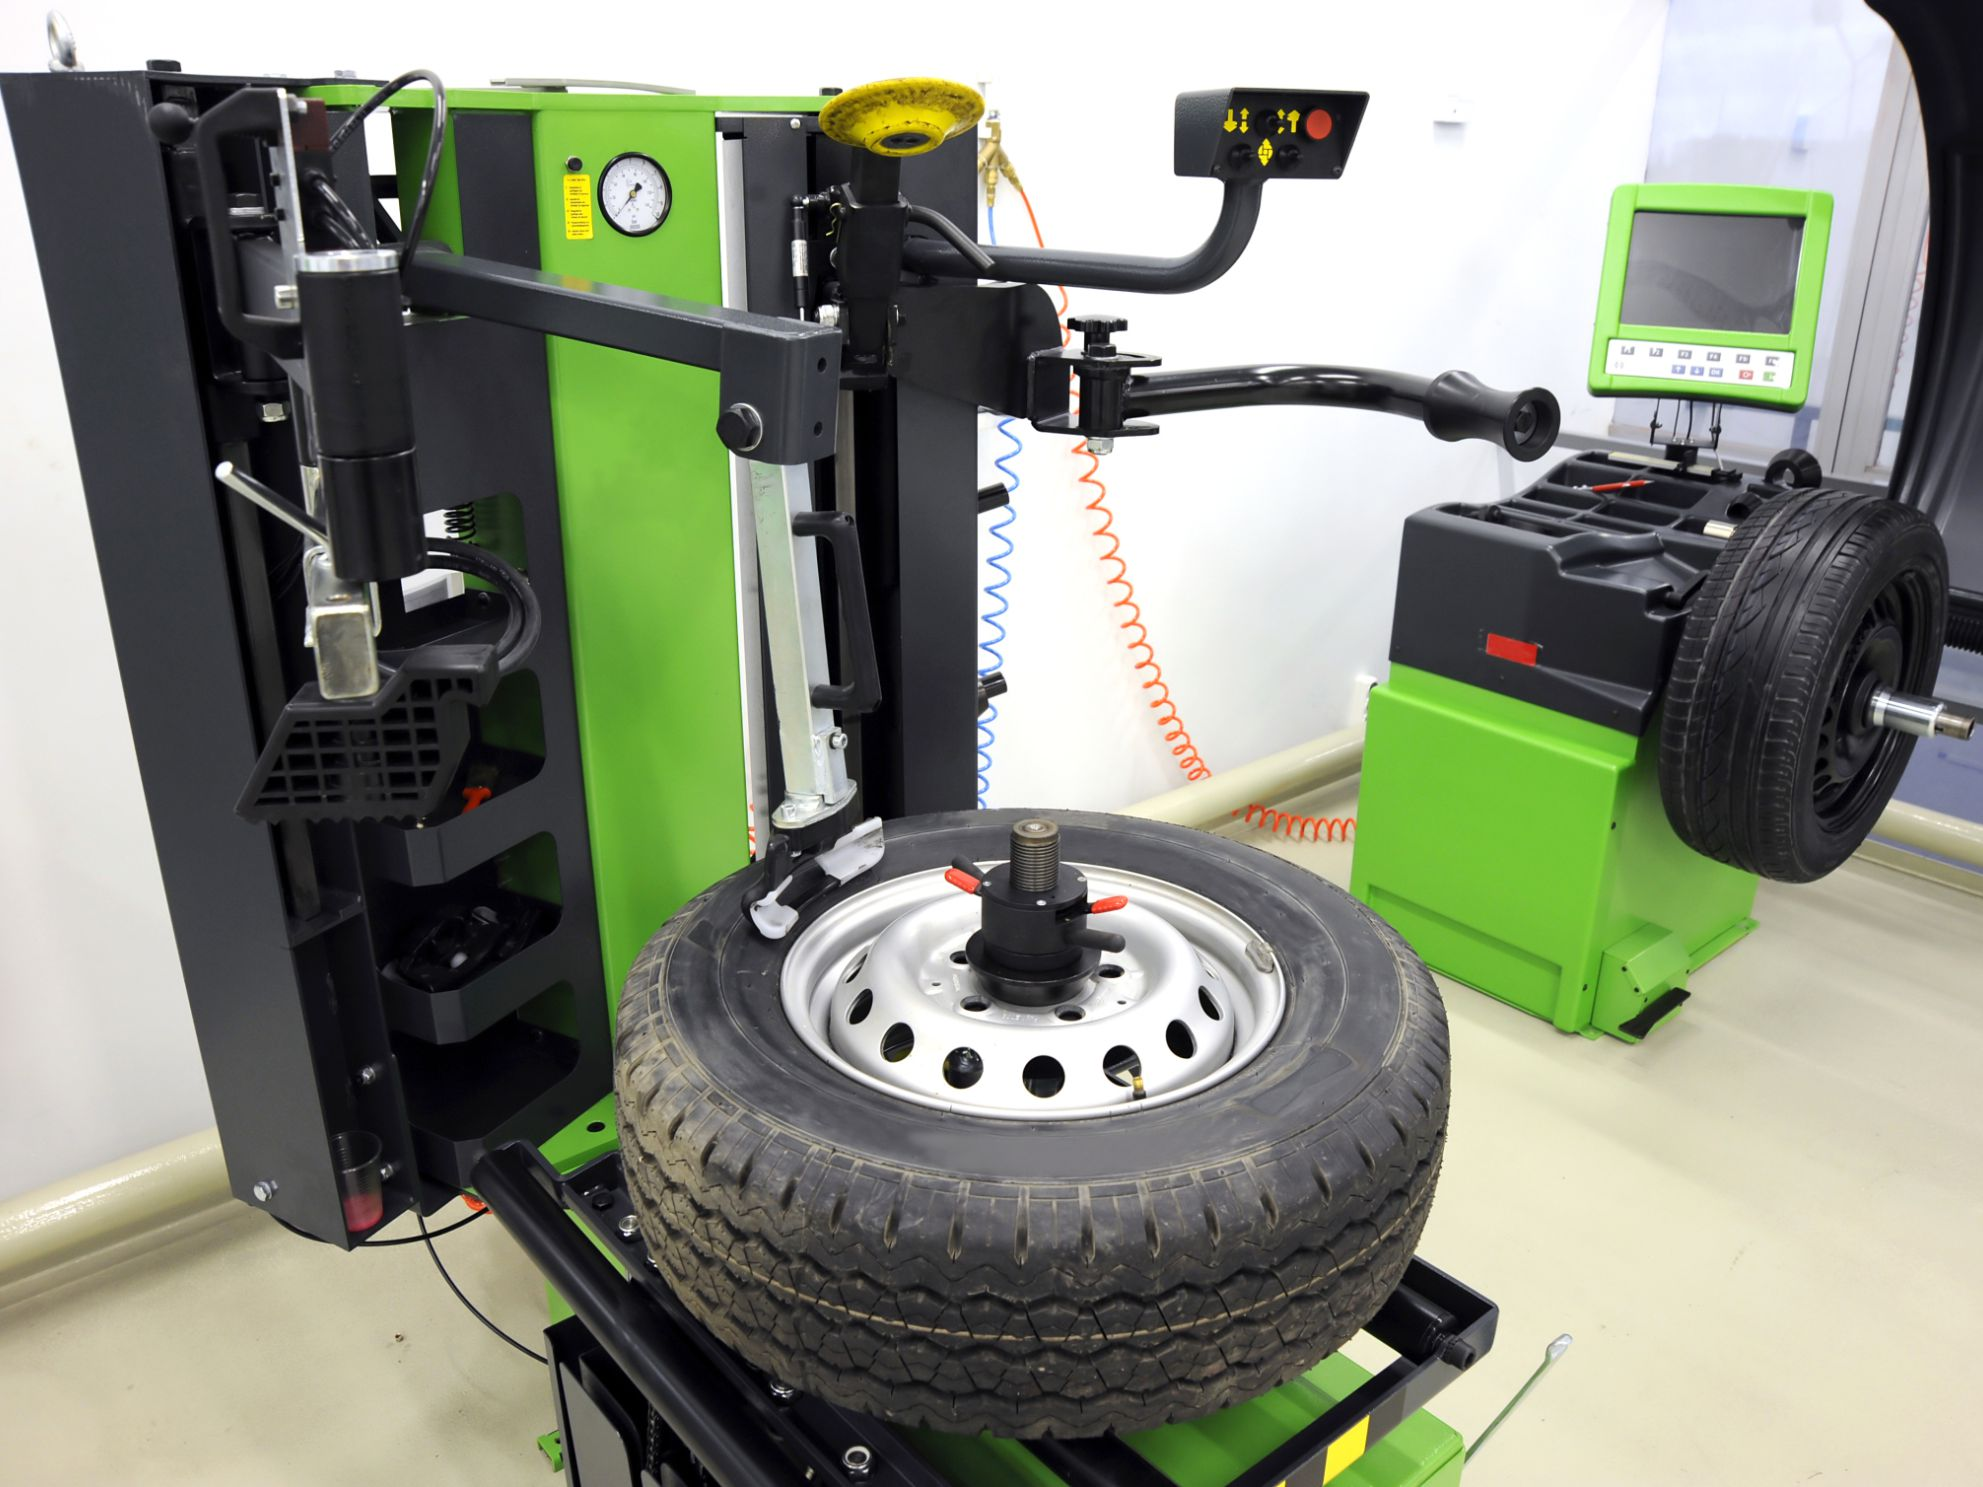 How to Balance Tires Without a Machine